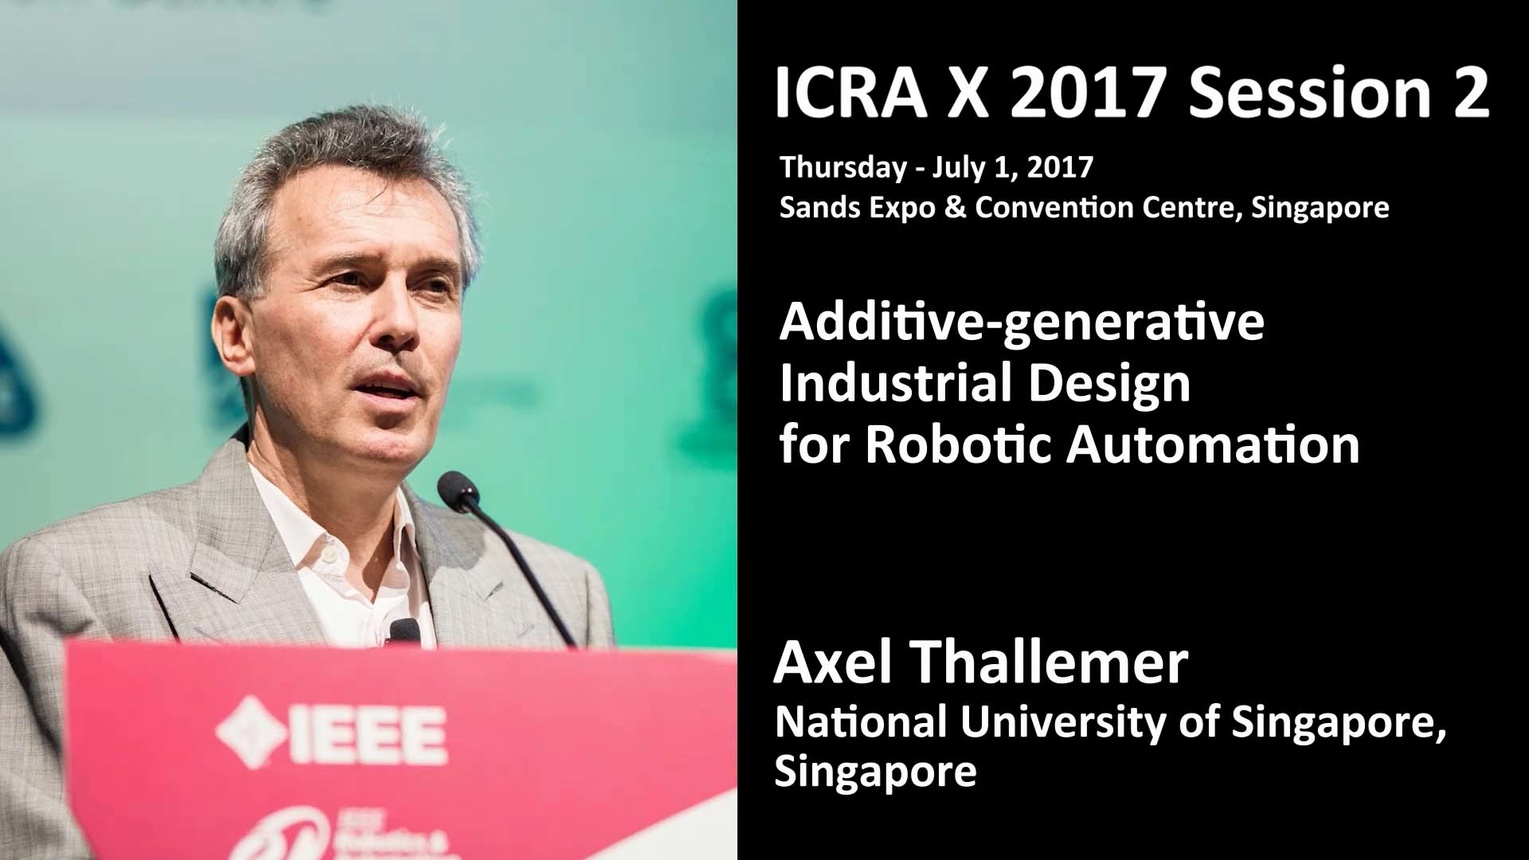 Additive-generative Industrial Design for Robotic Automation